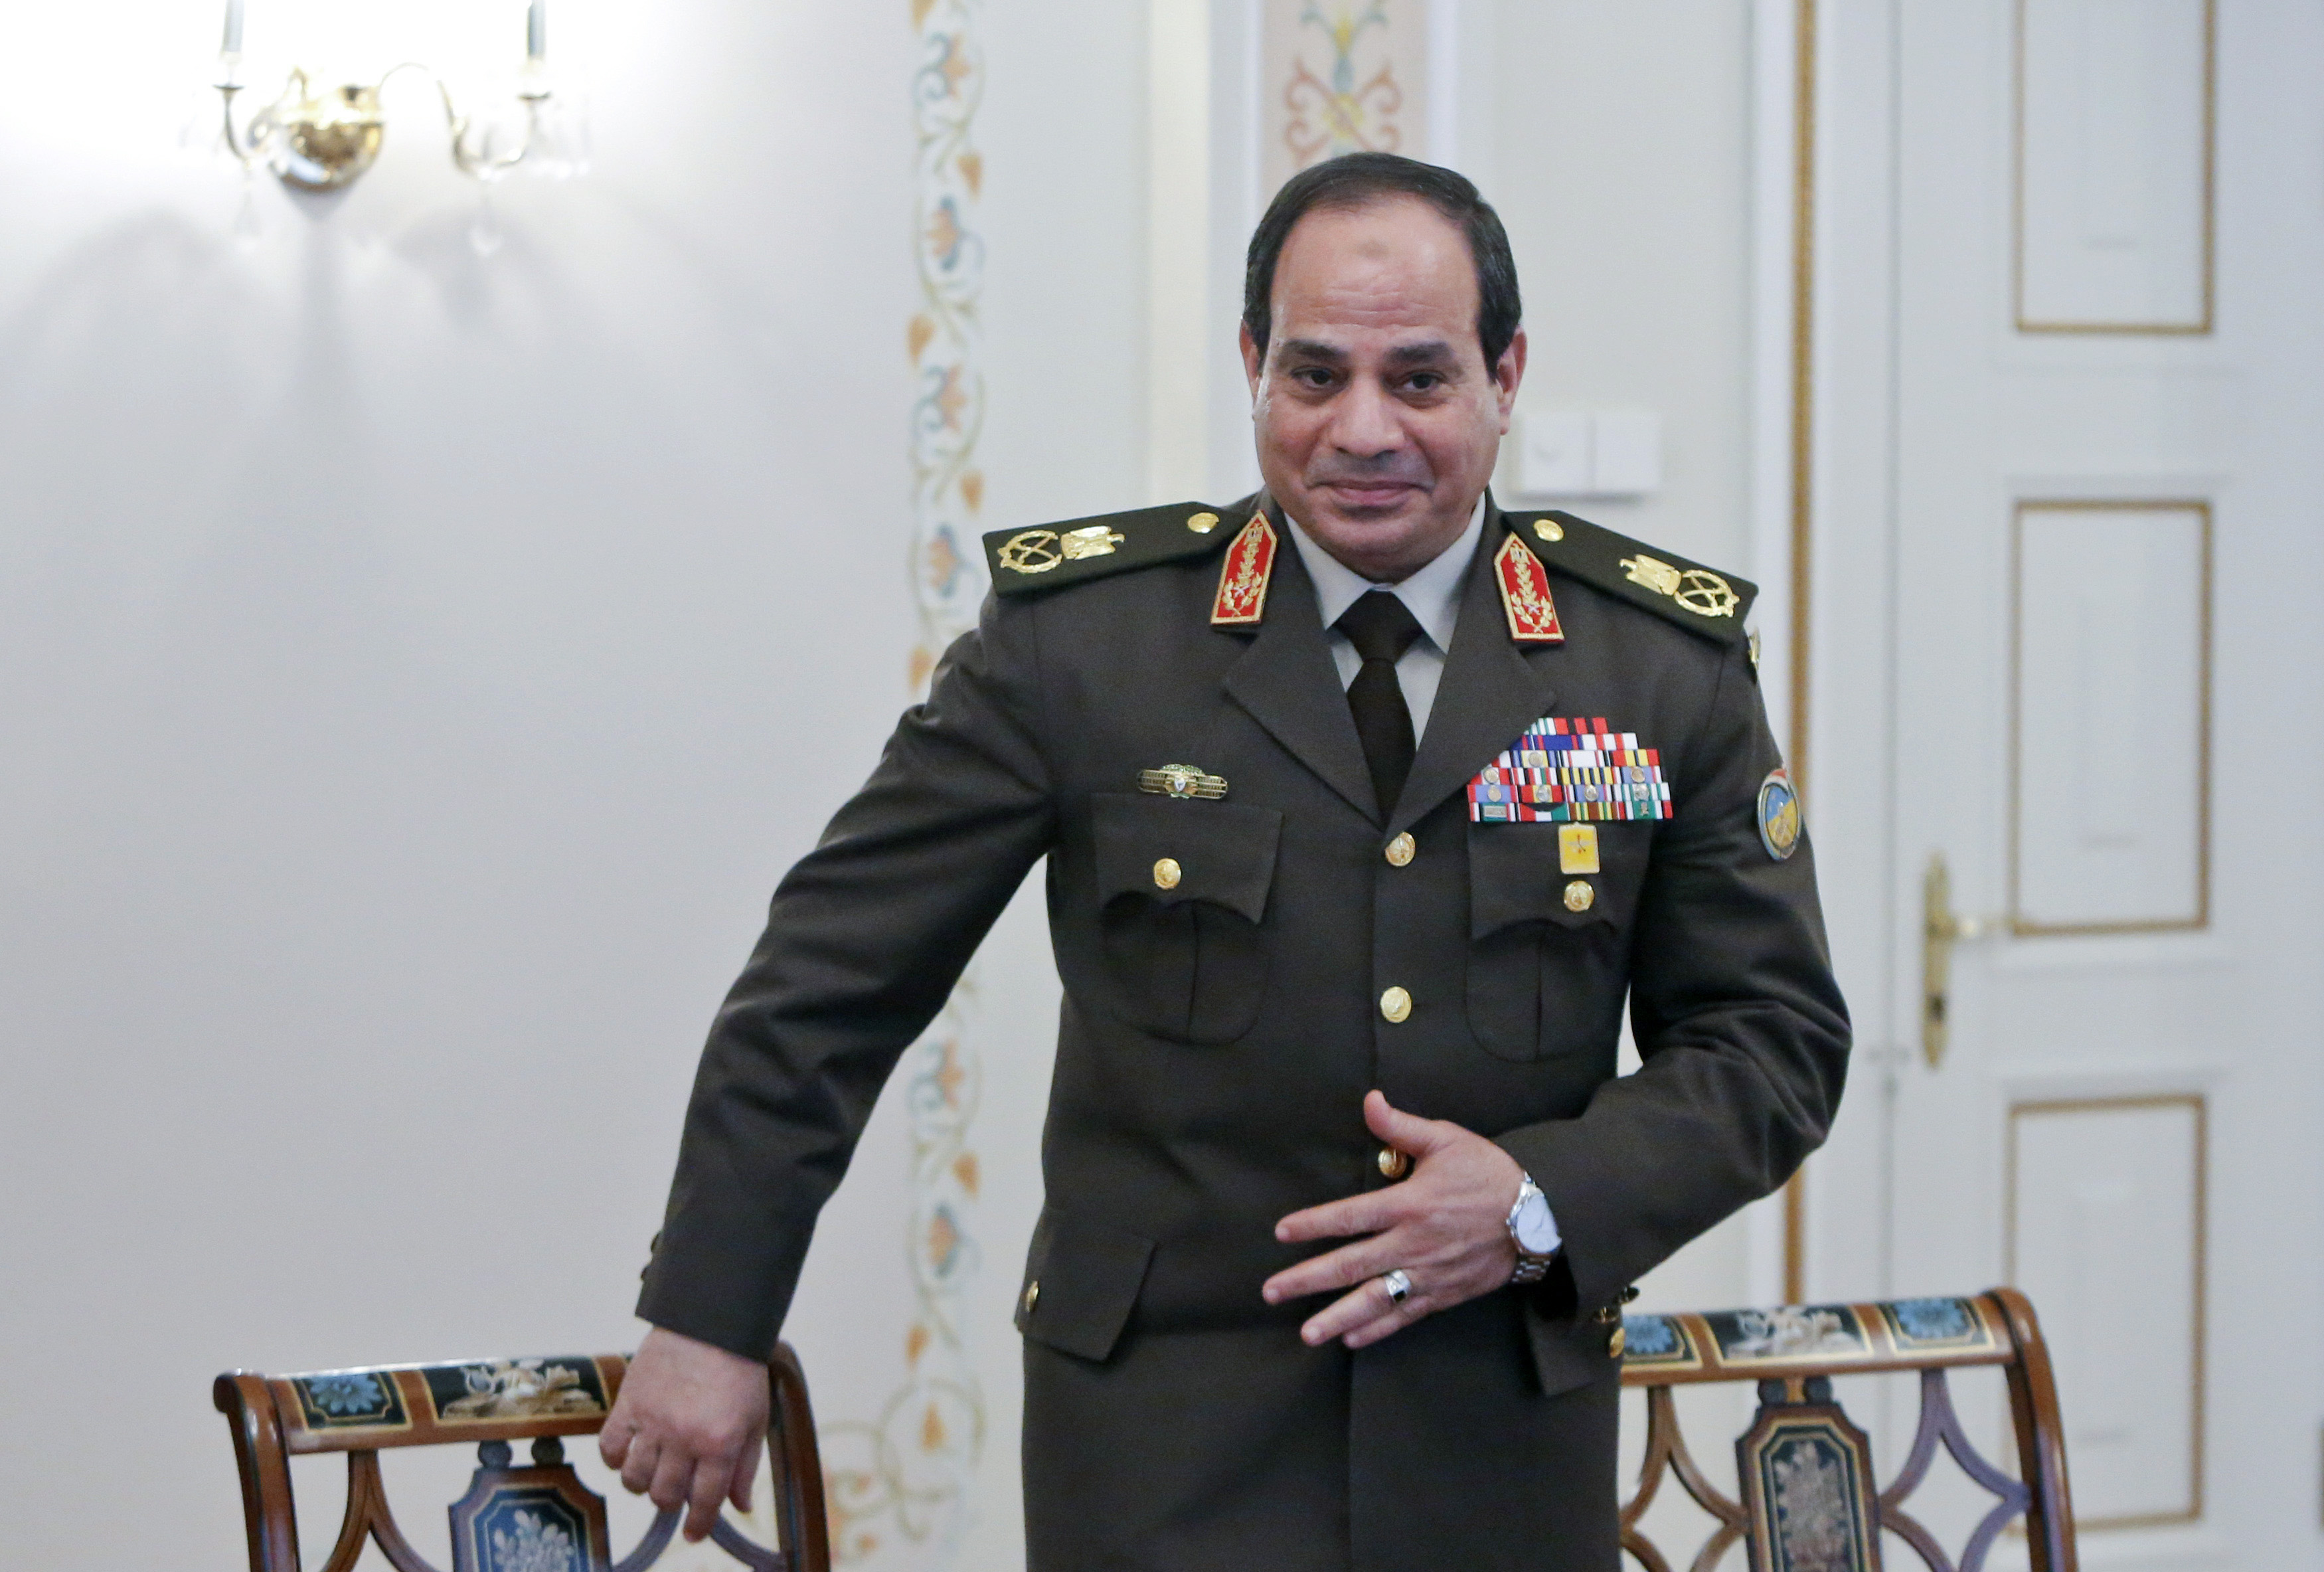 Egyptian Army chief Field Marshal Abdel Fattah al-Sisi arrives for a meeting with Russian President Vladimir Putin at the Novo-Ogaryovo state residence outside Moscow, February 13, 2014.